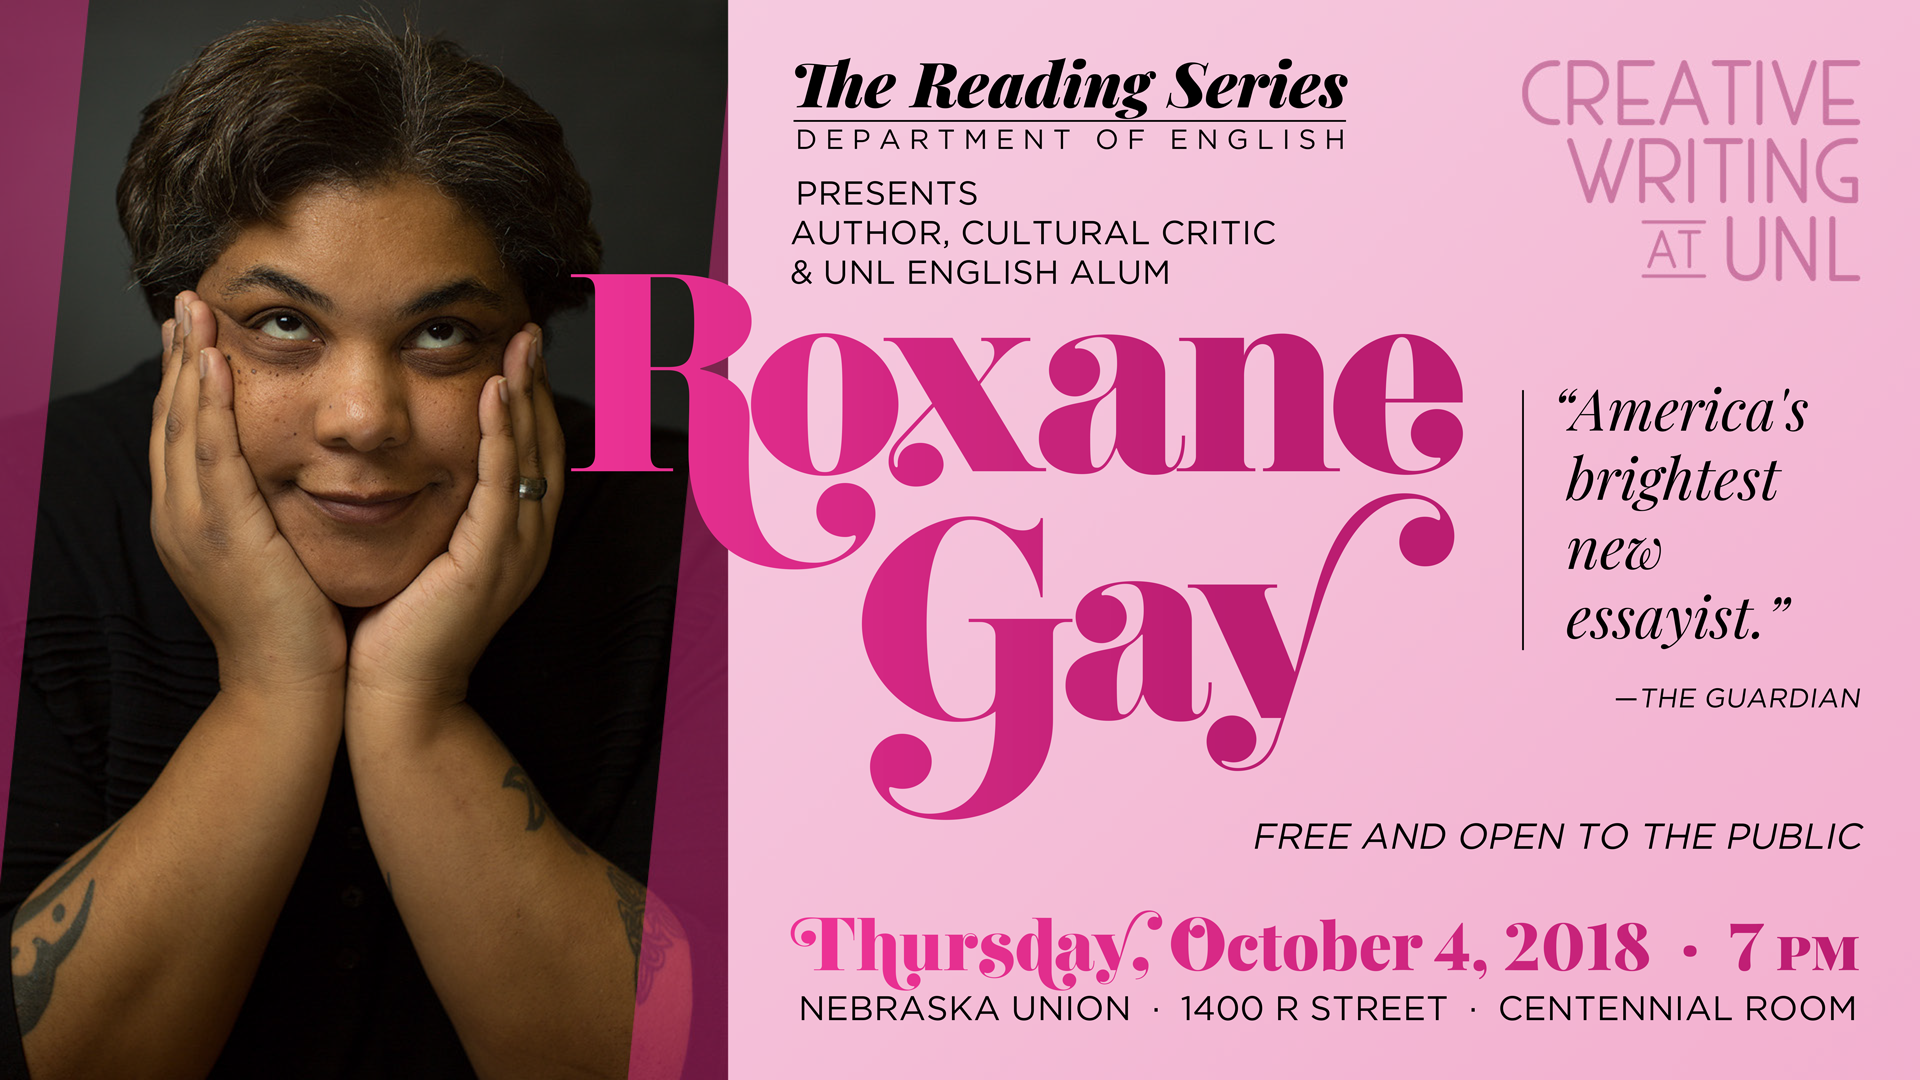 Promotional image for Roxane Gay event - text below